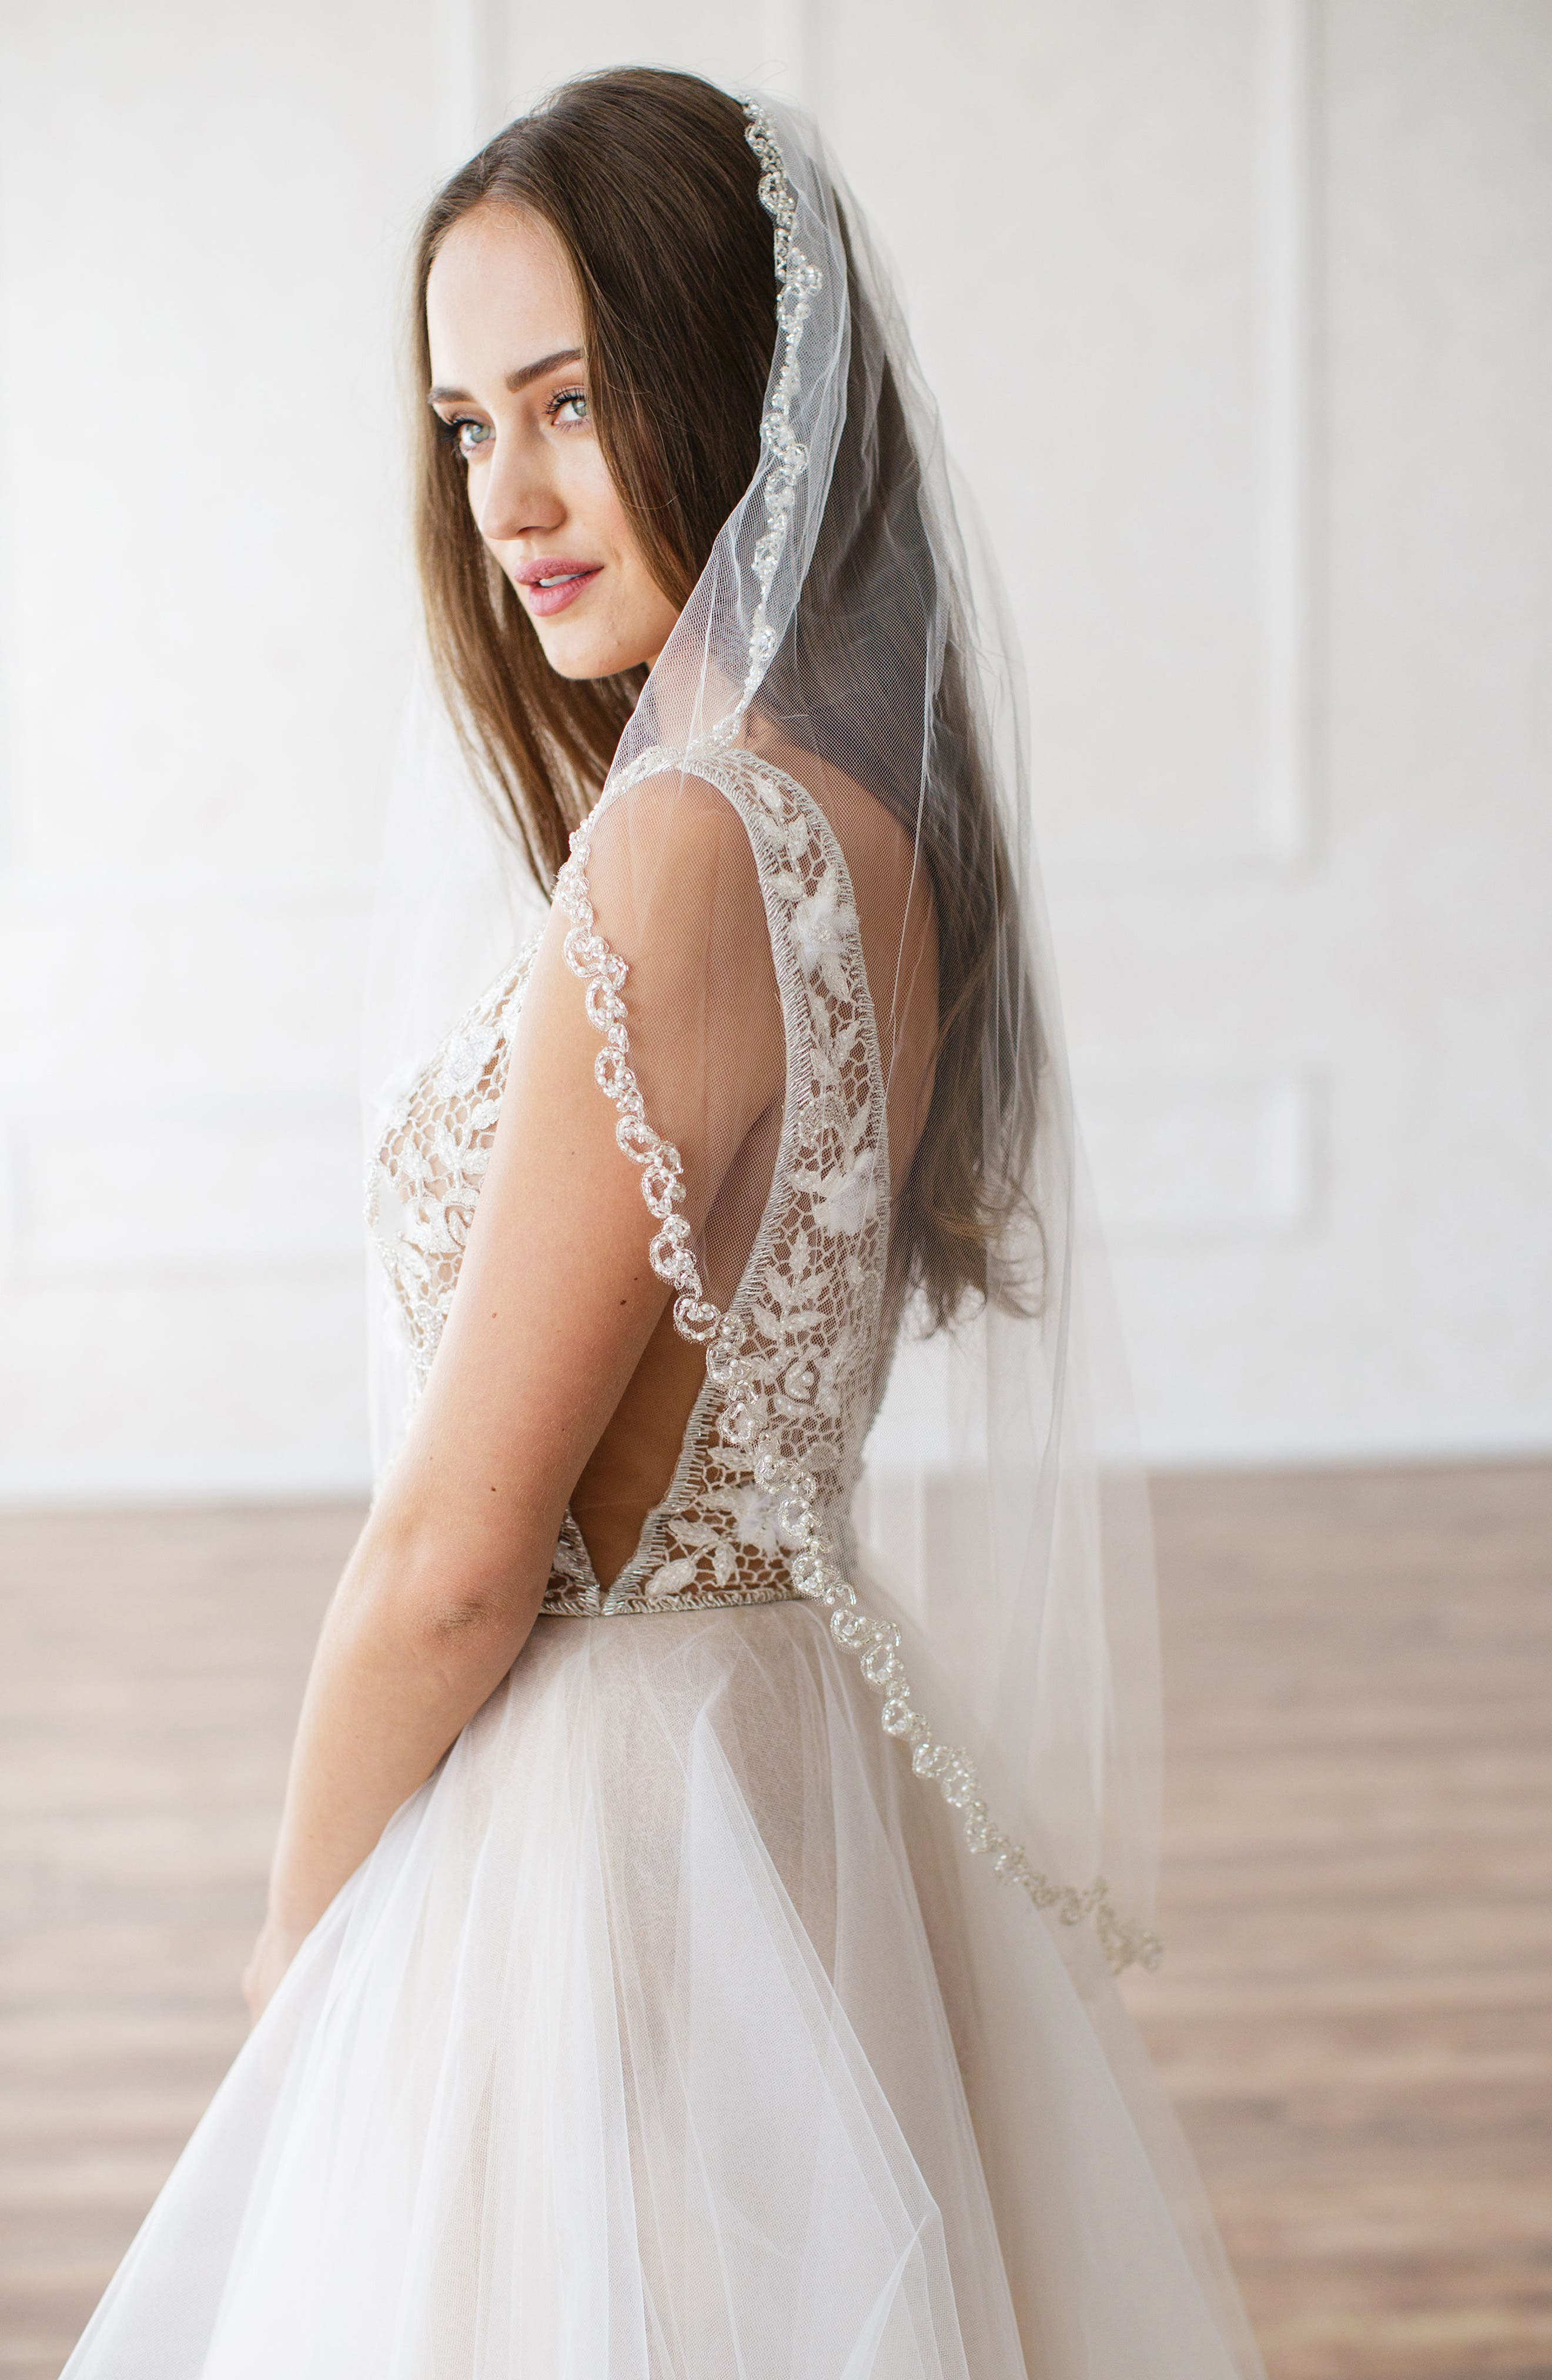 Brides & Hairpins 'Lydia' Embellished Tulle Veil